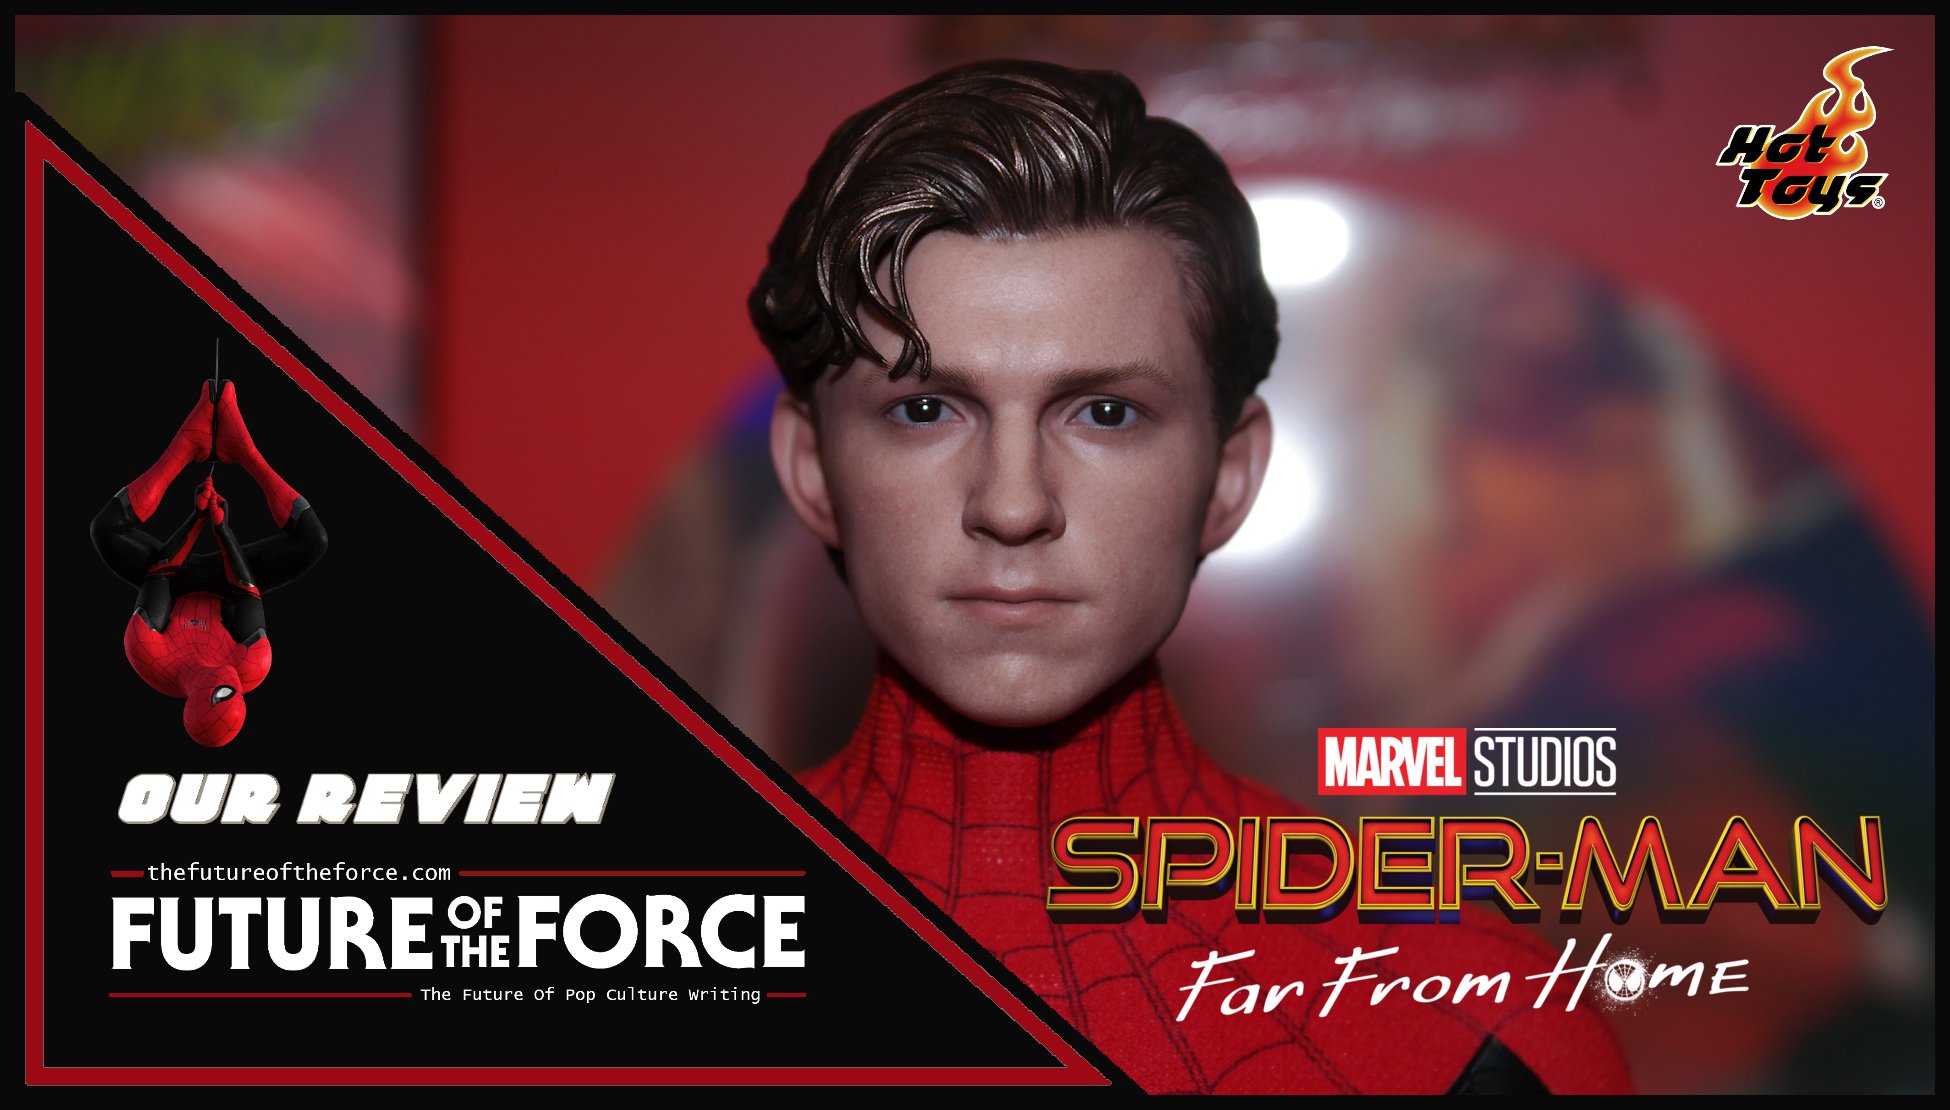 Hot Toys Spider-Man Upgrade Suit Review